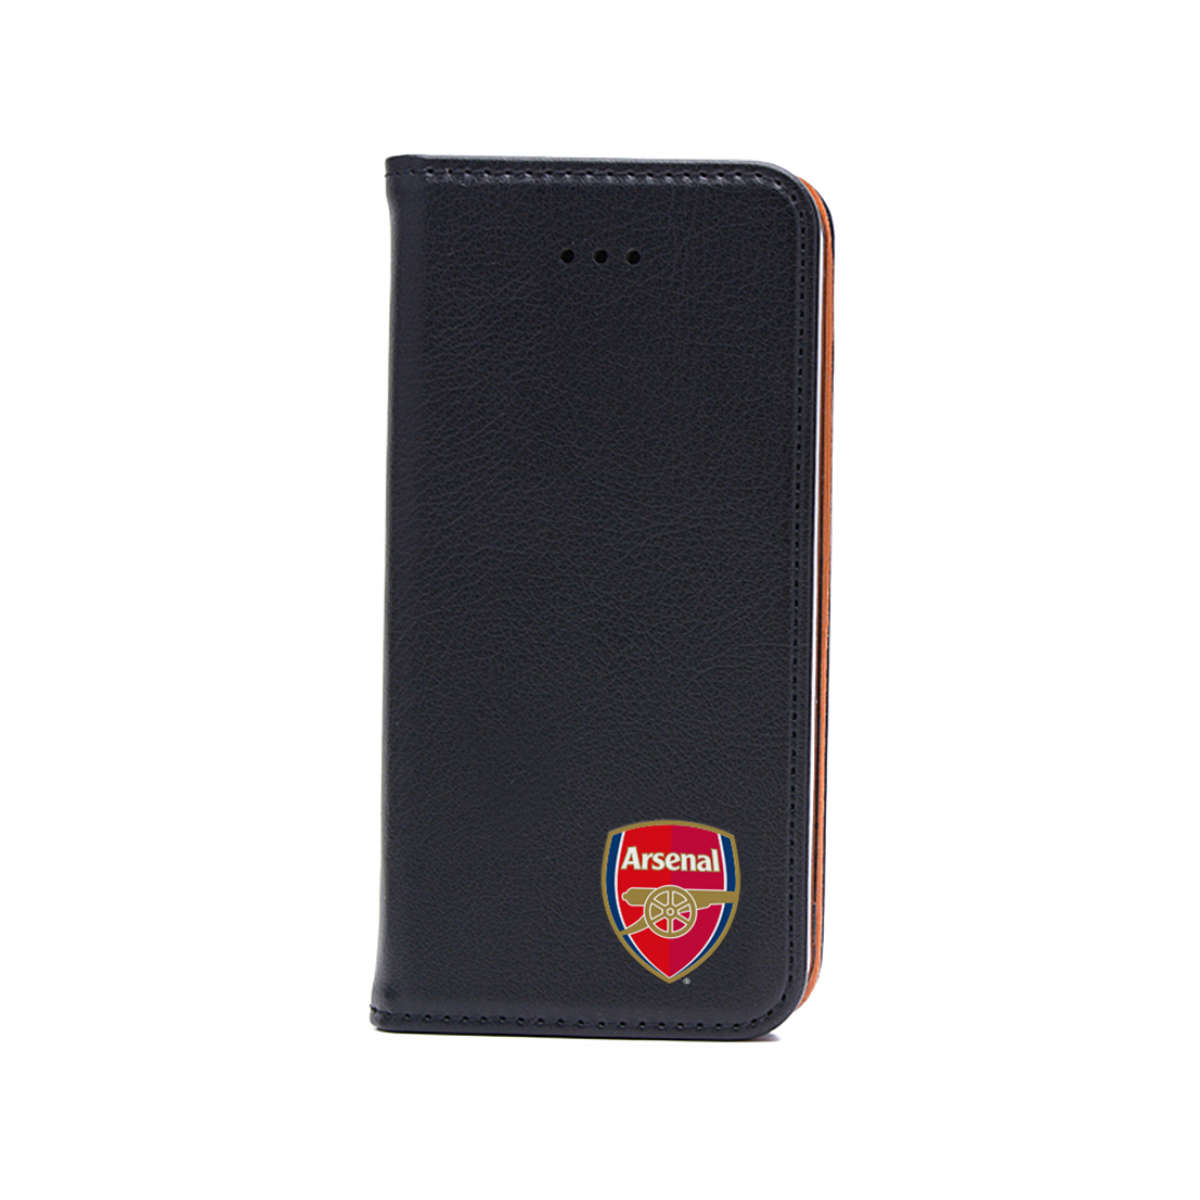 InToro Arsenal iPhone 6 Folio Case